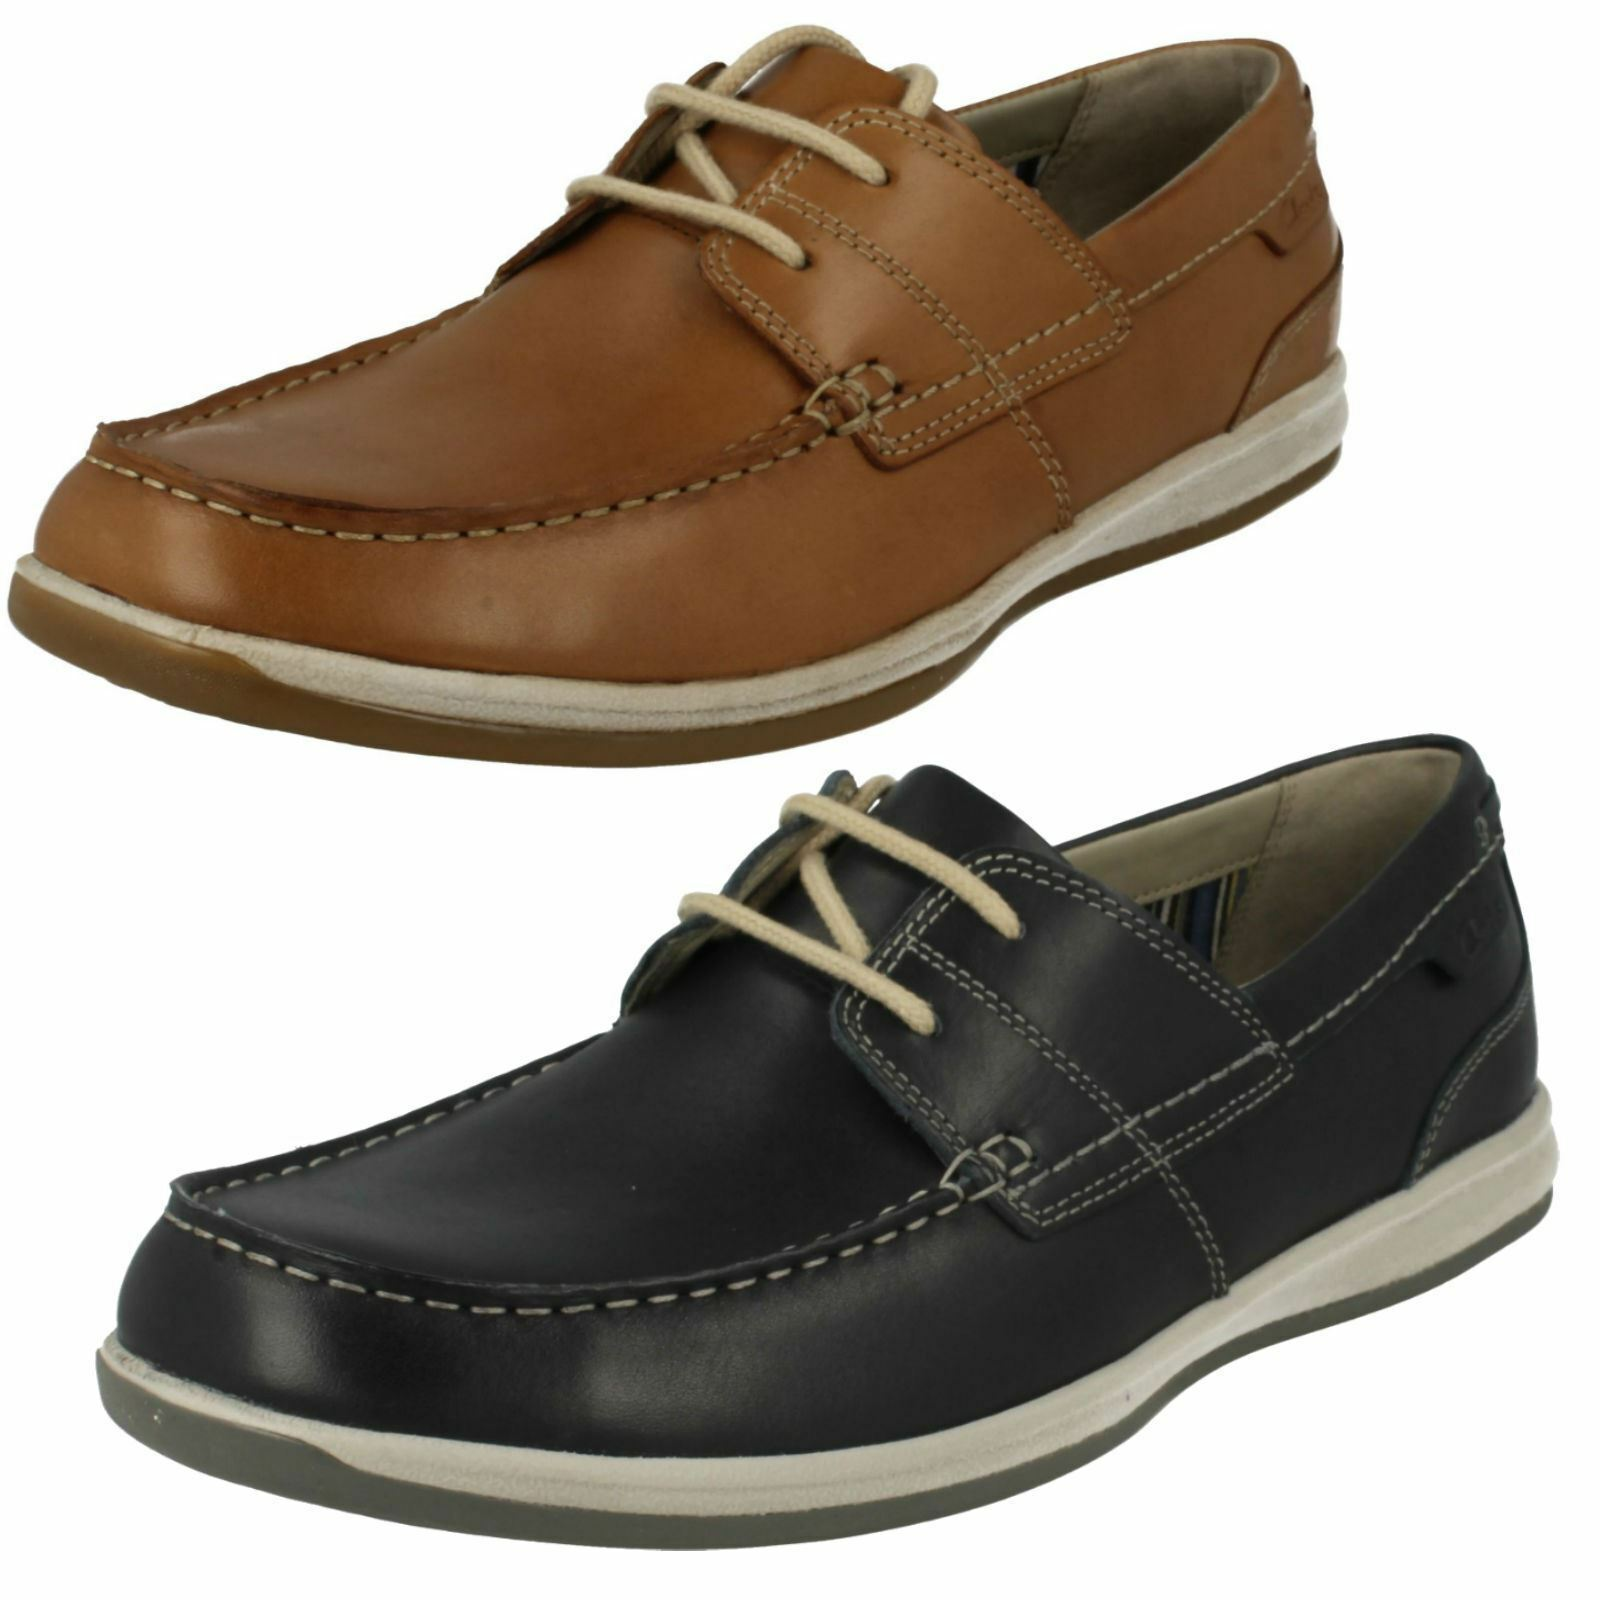 Hommes Clarks Fallston Style Lacets Chaussures Casual en Cuir Largeur G